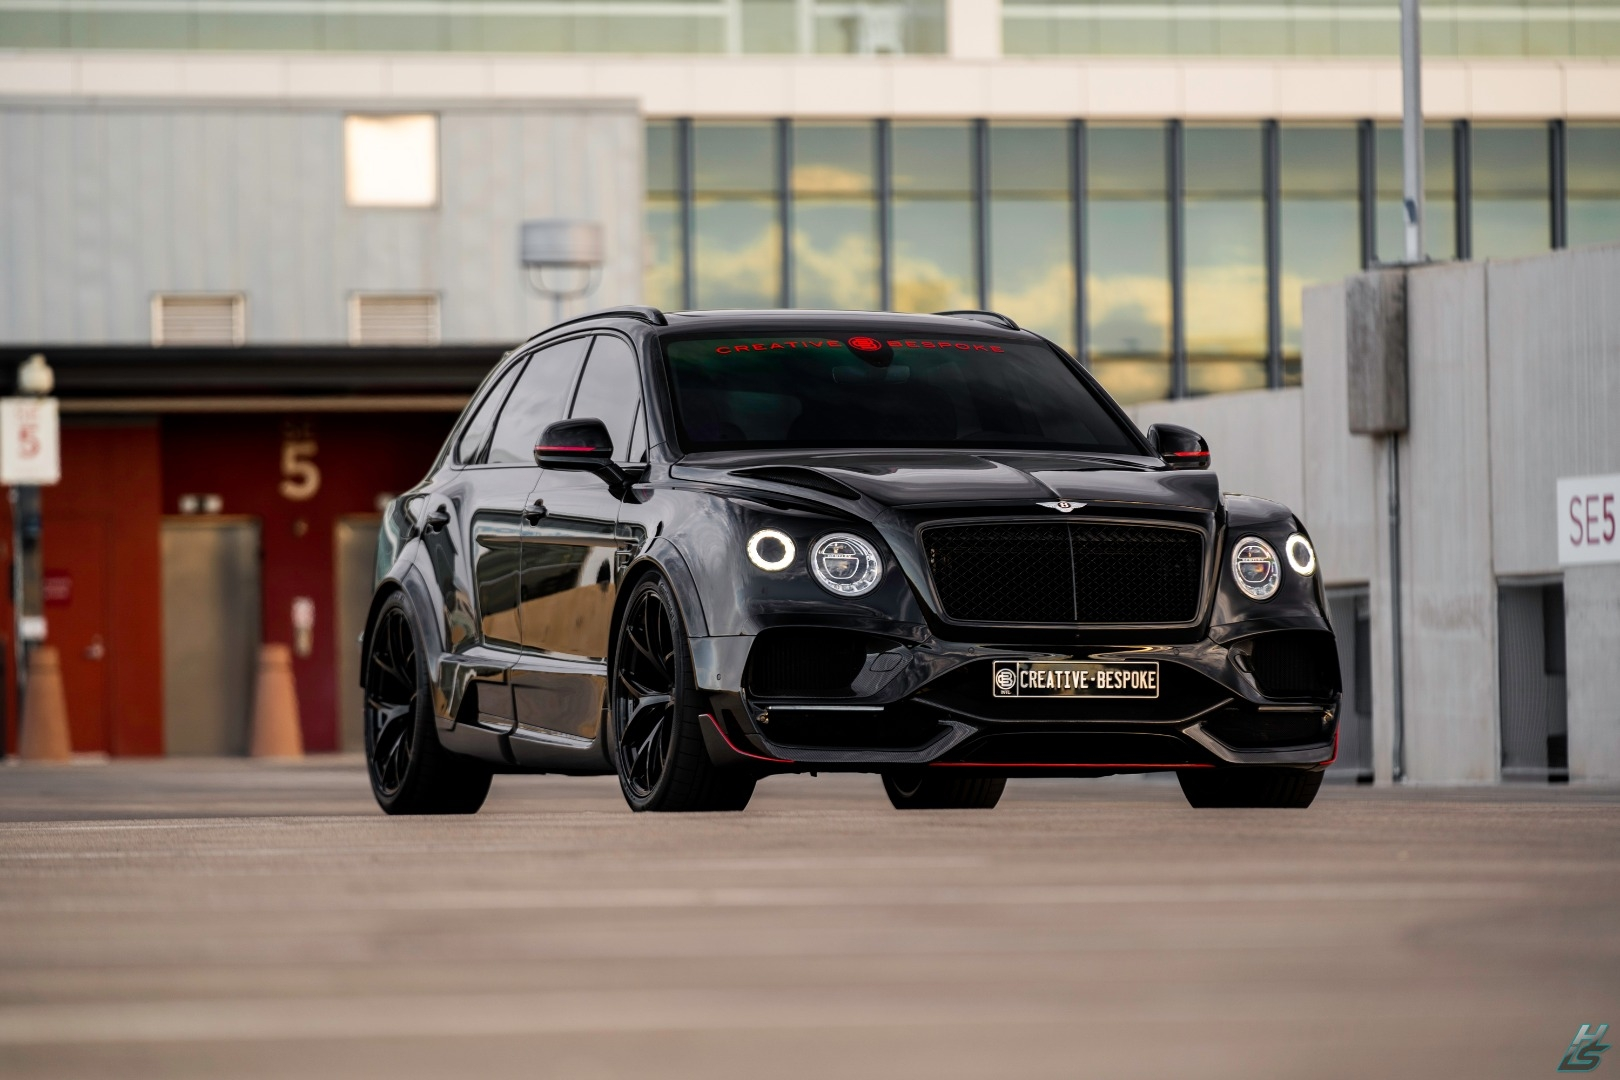 The U.S. supercar tuner has presented its take on the 2019 Bentley Bentayga. The luxury SUV has around 7,000 km (4,400 miles) under its belt and goes for $239,000 – a $50,000+ premium over a brand-new 2021 Bentayga.